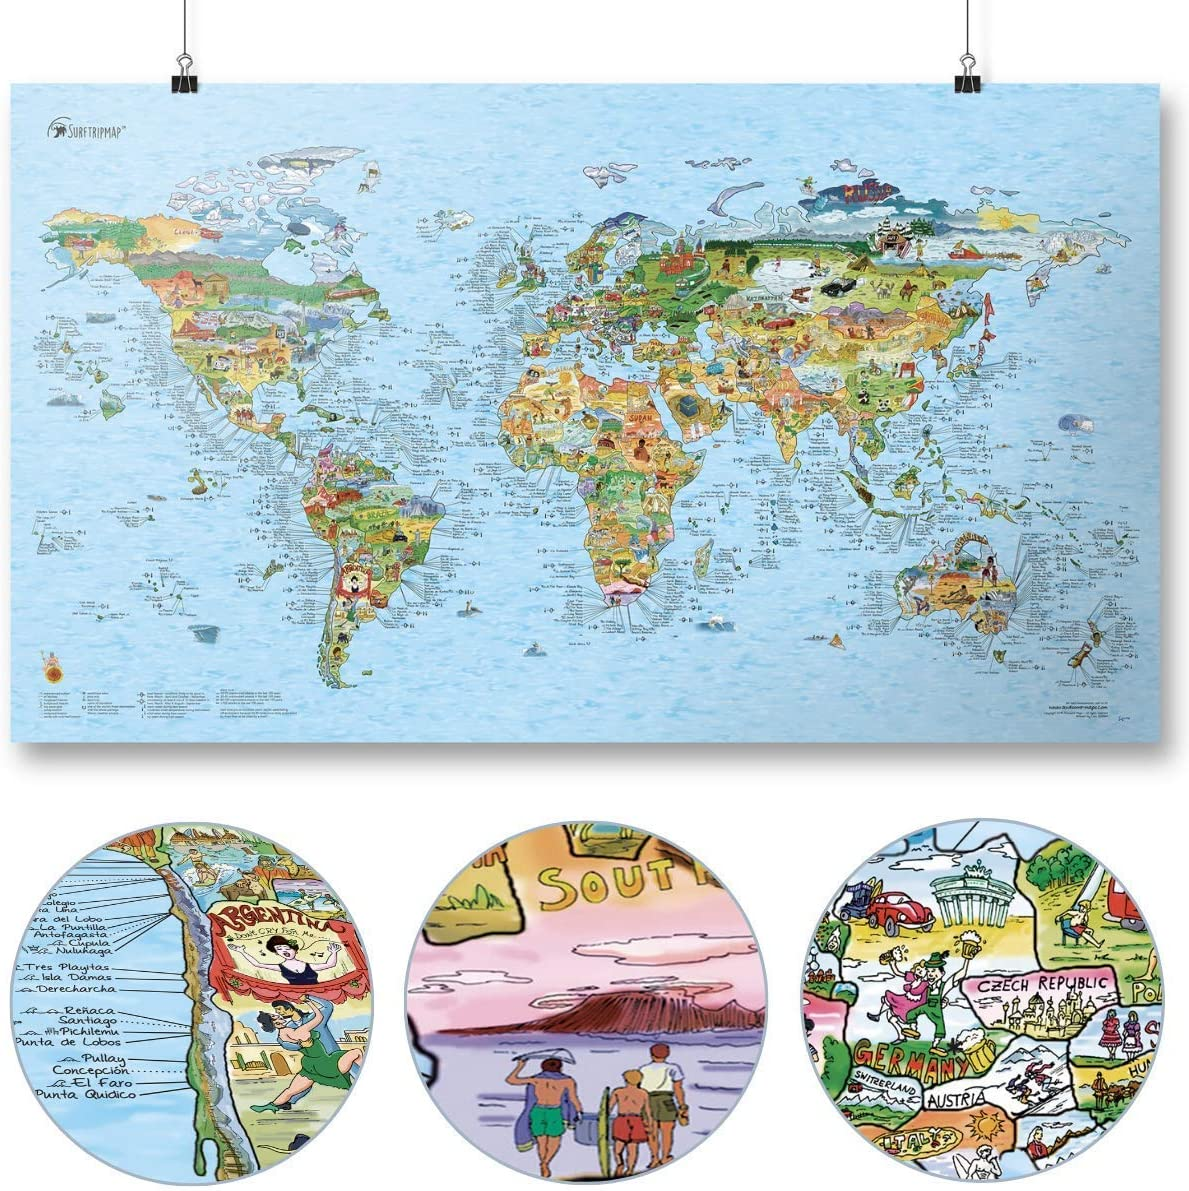 Surftrip Map by Awesome Maps - Mapa mundial ilustrado para los surfistas - reescribible - 97,5 x 56 cm: Amazon.es: Juguetes y juegos